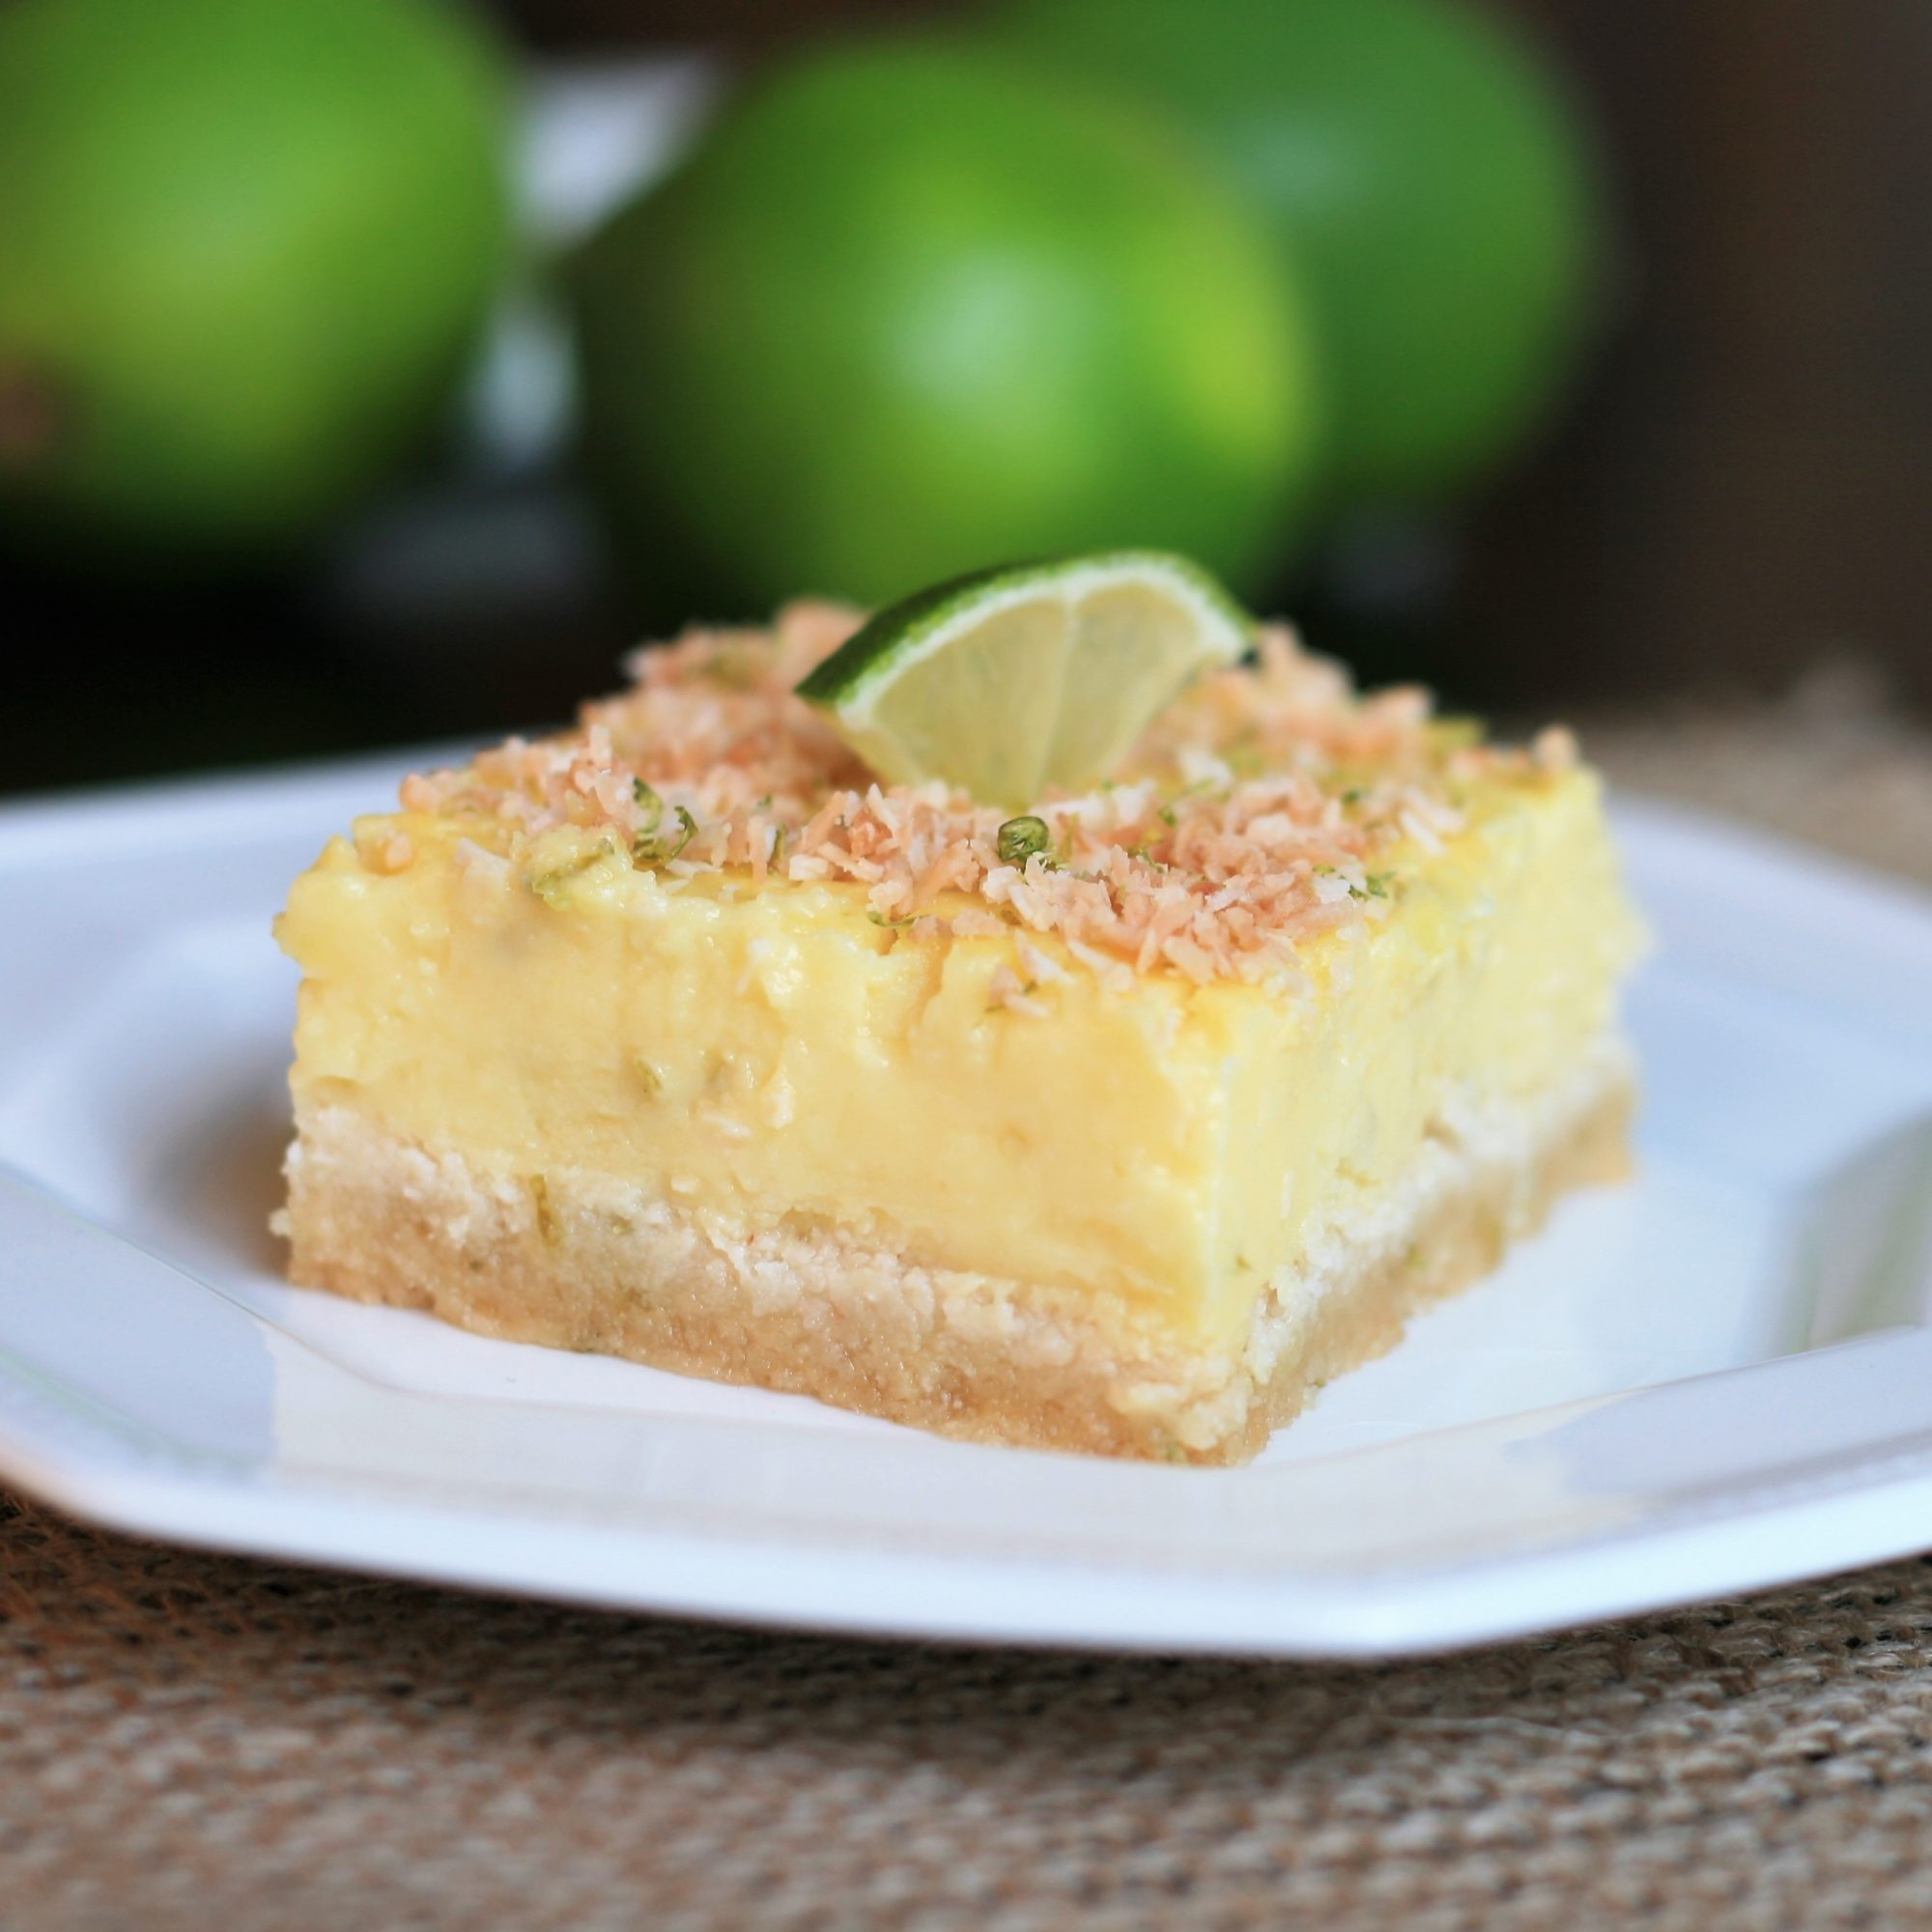 Keto Coconut Lime Bars on a white plate with limes in the background